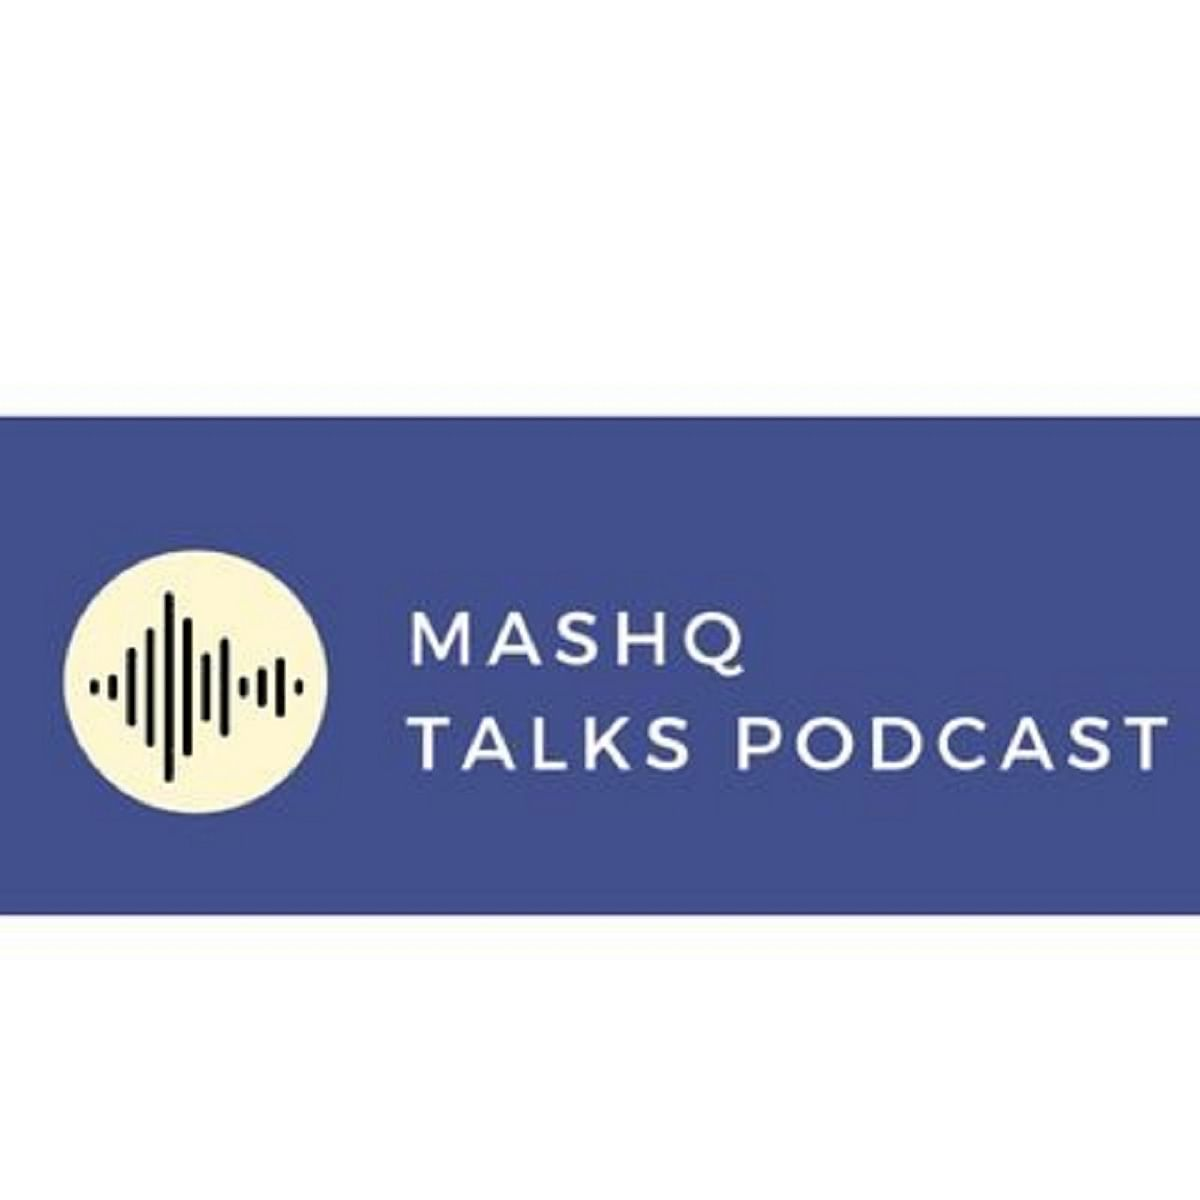 Mashq Talks Podcast